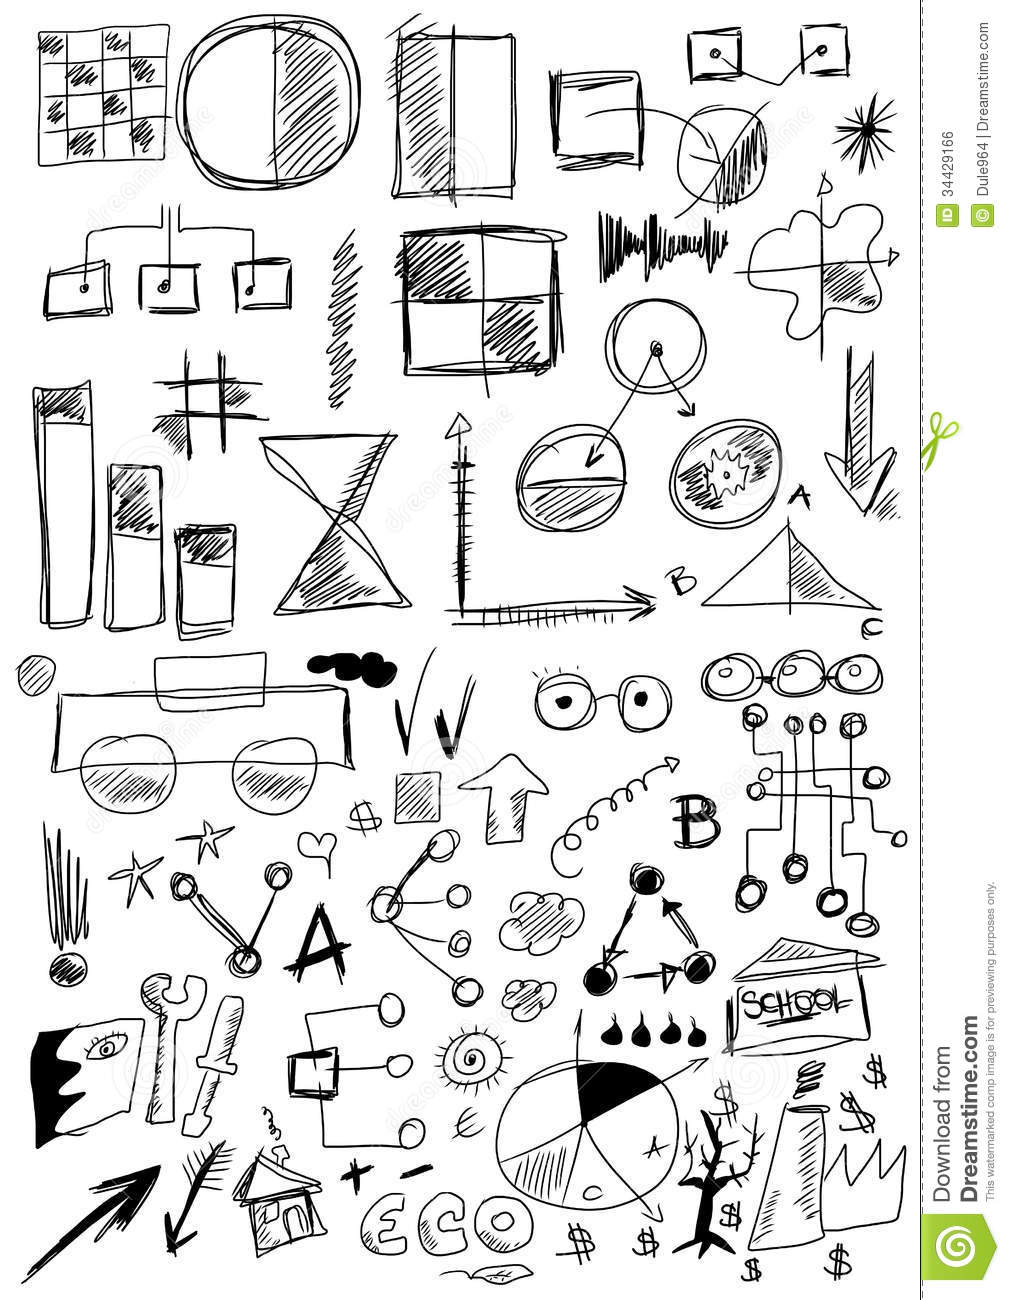 hand drawn design elements business stock illustration